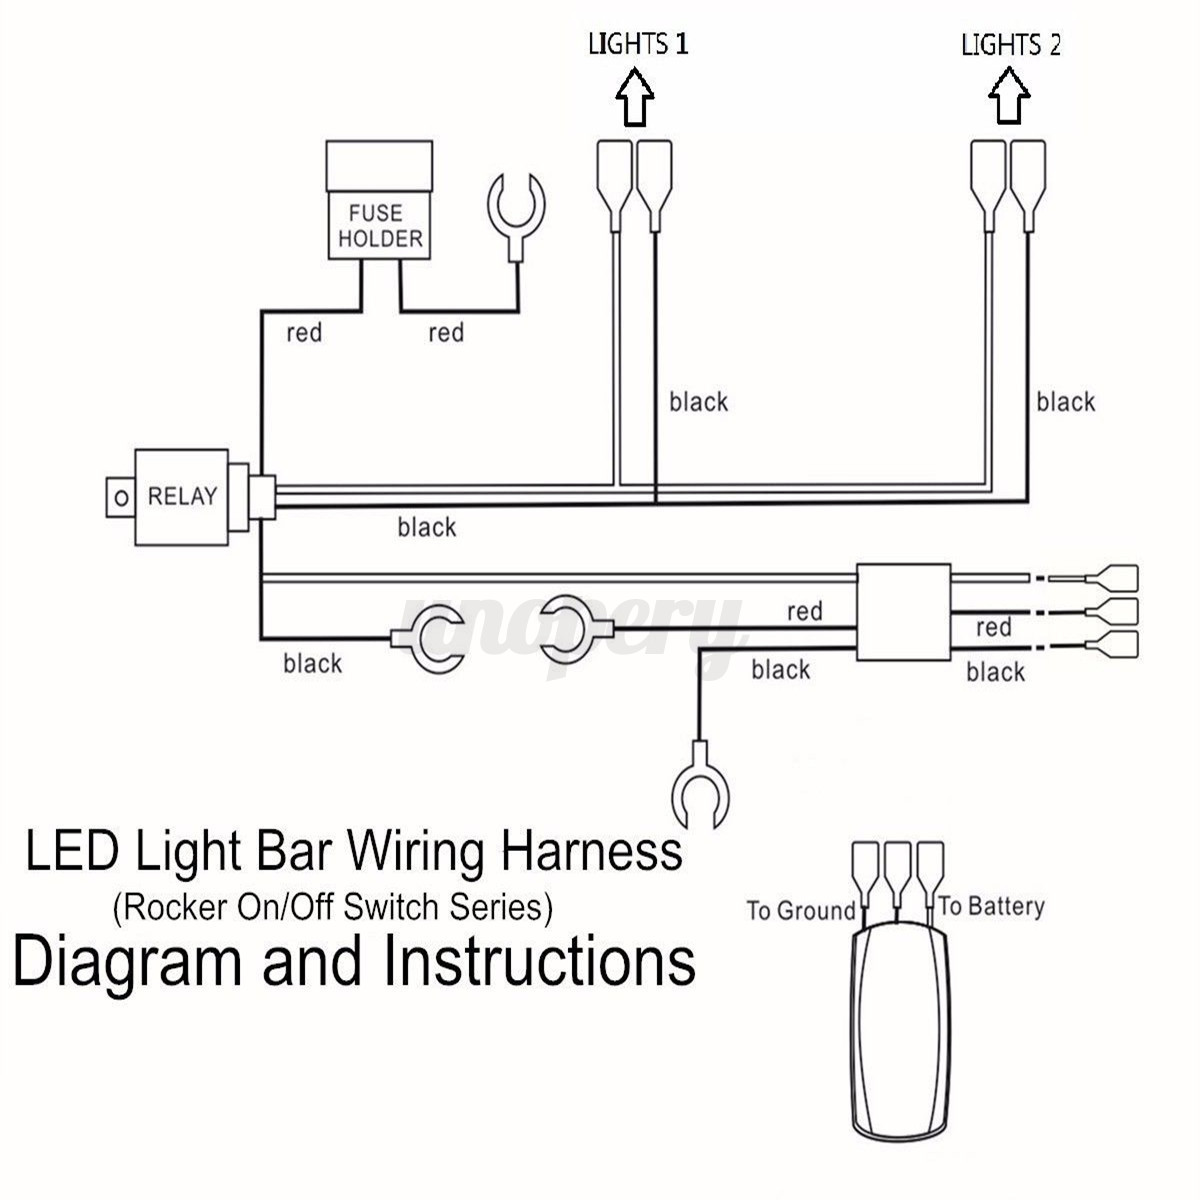 led light bar wiring diagram wiring diagram and hernes led light bar wiring diagram auto schematic